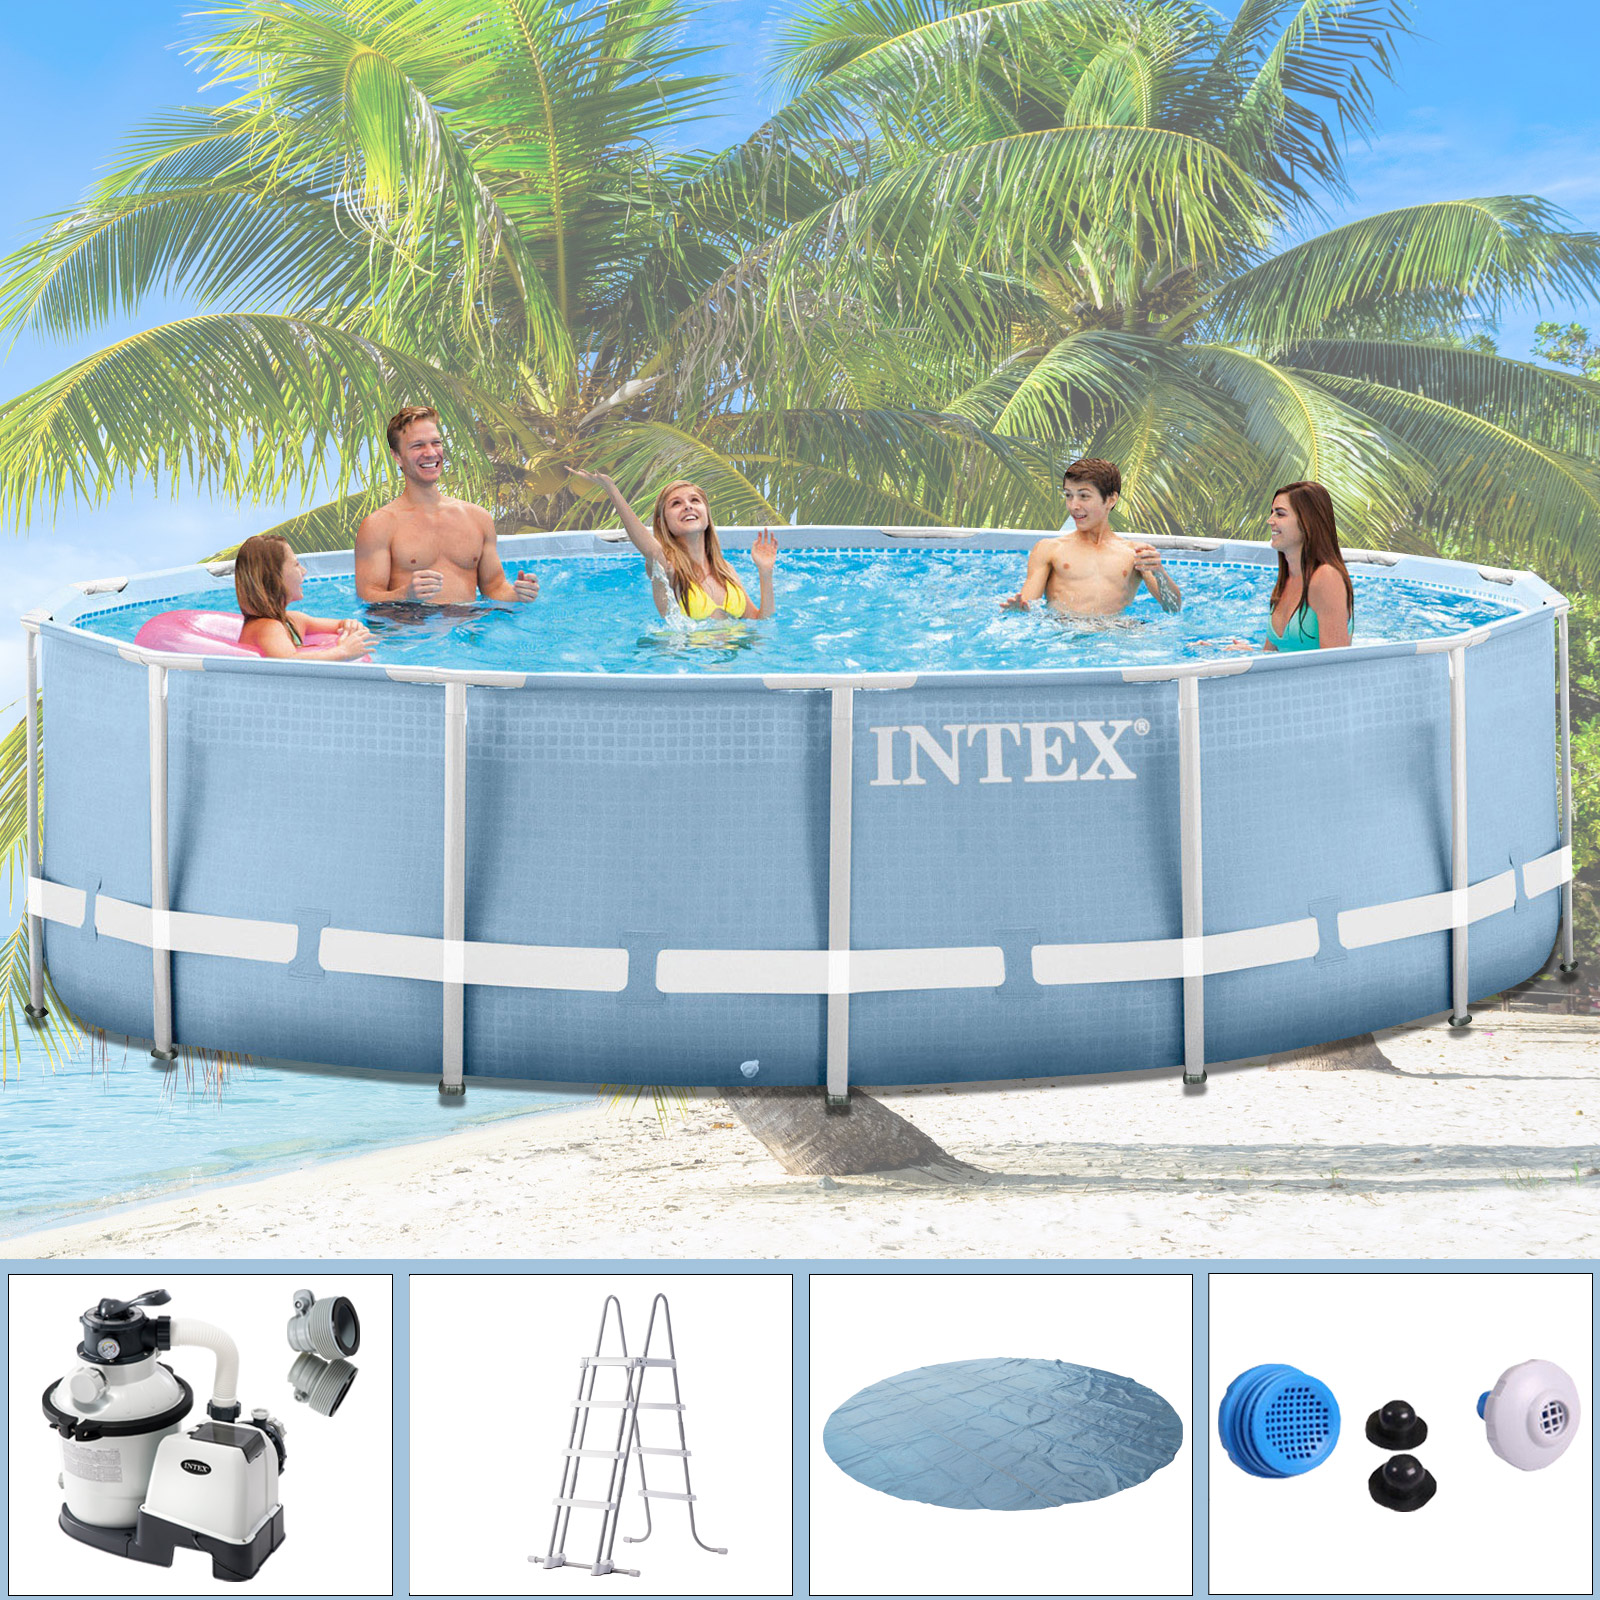 Intex Pool Komplettset Mit Sandfilter Intex 457x122 Komplettset Swimming Pool Schwimmbad Frame